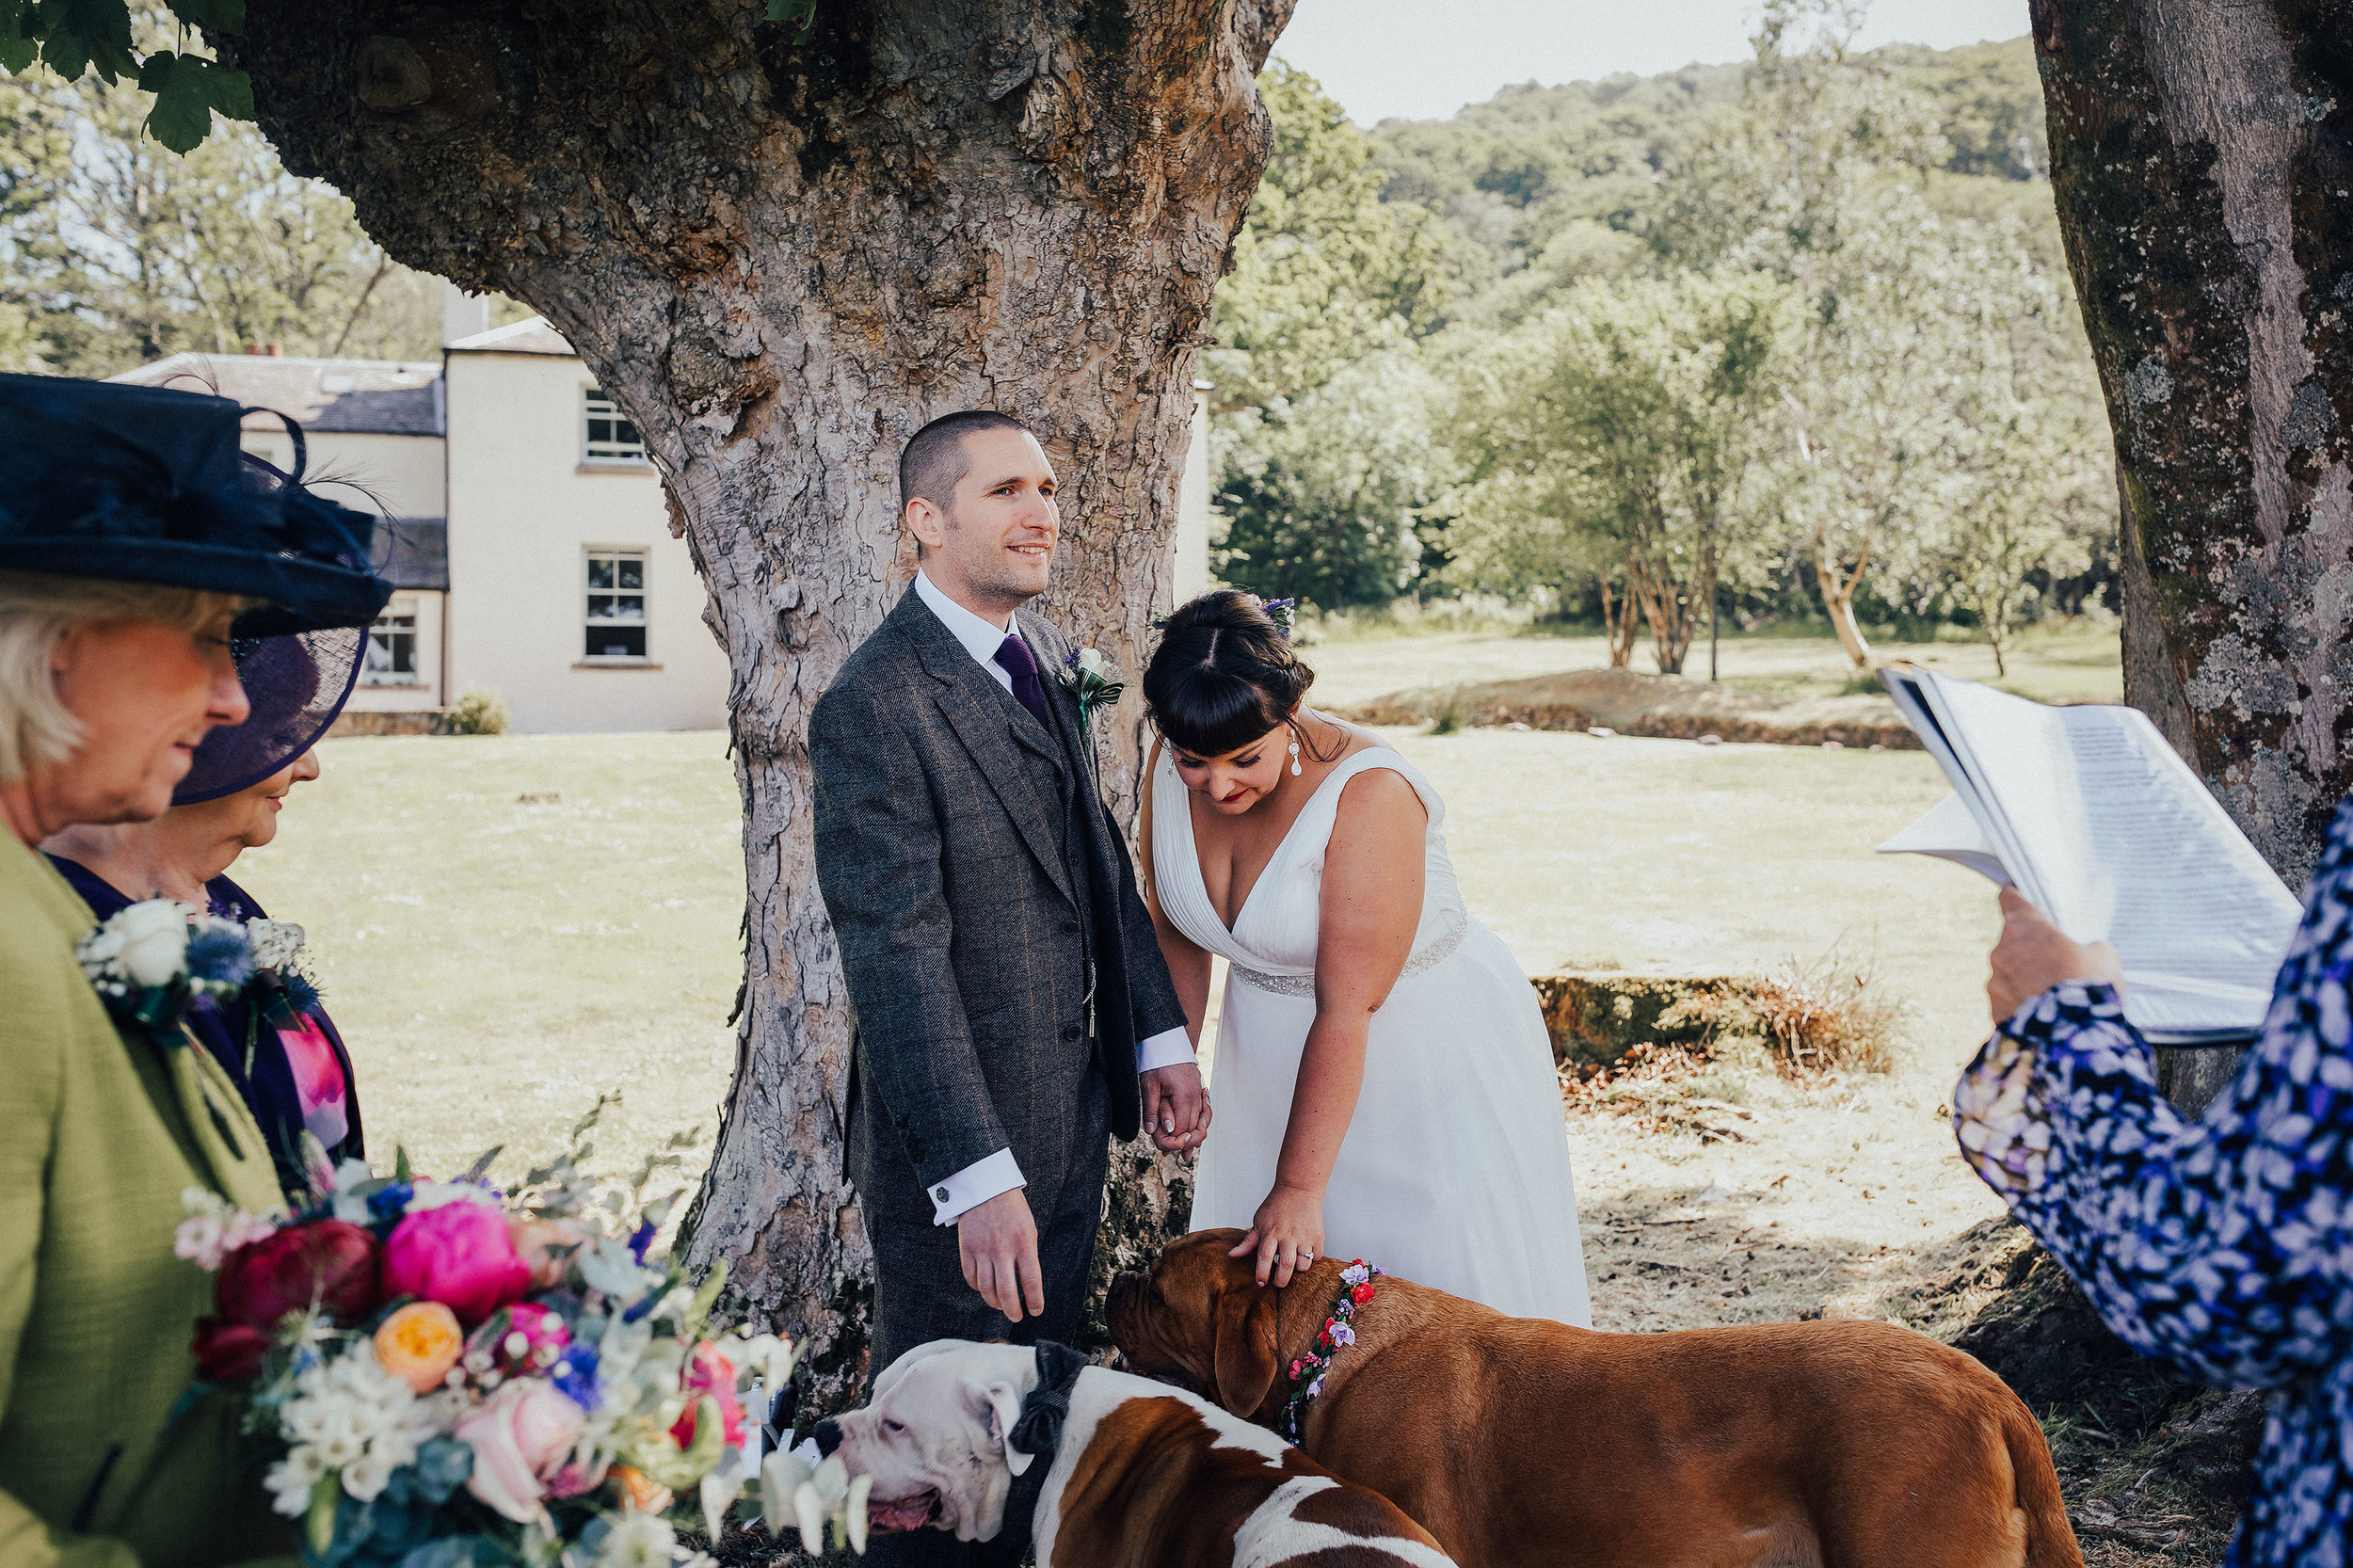 SCOTTISH_ELOPEMENT_PHOTOGRAPHER_PJ_PHILLIPS_PHOTOGRAPHY_53.jpg